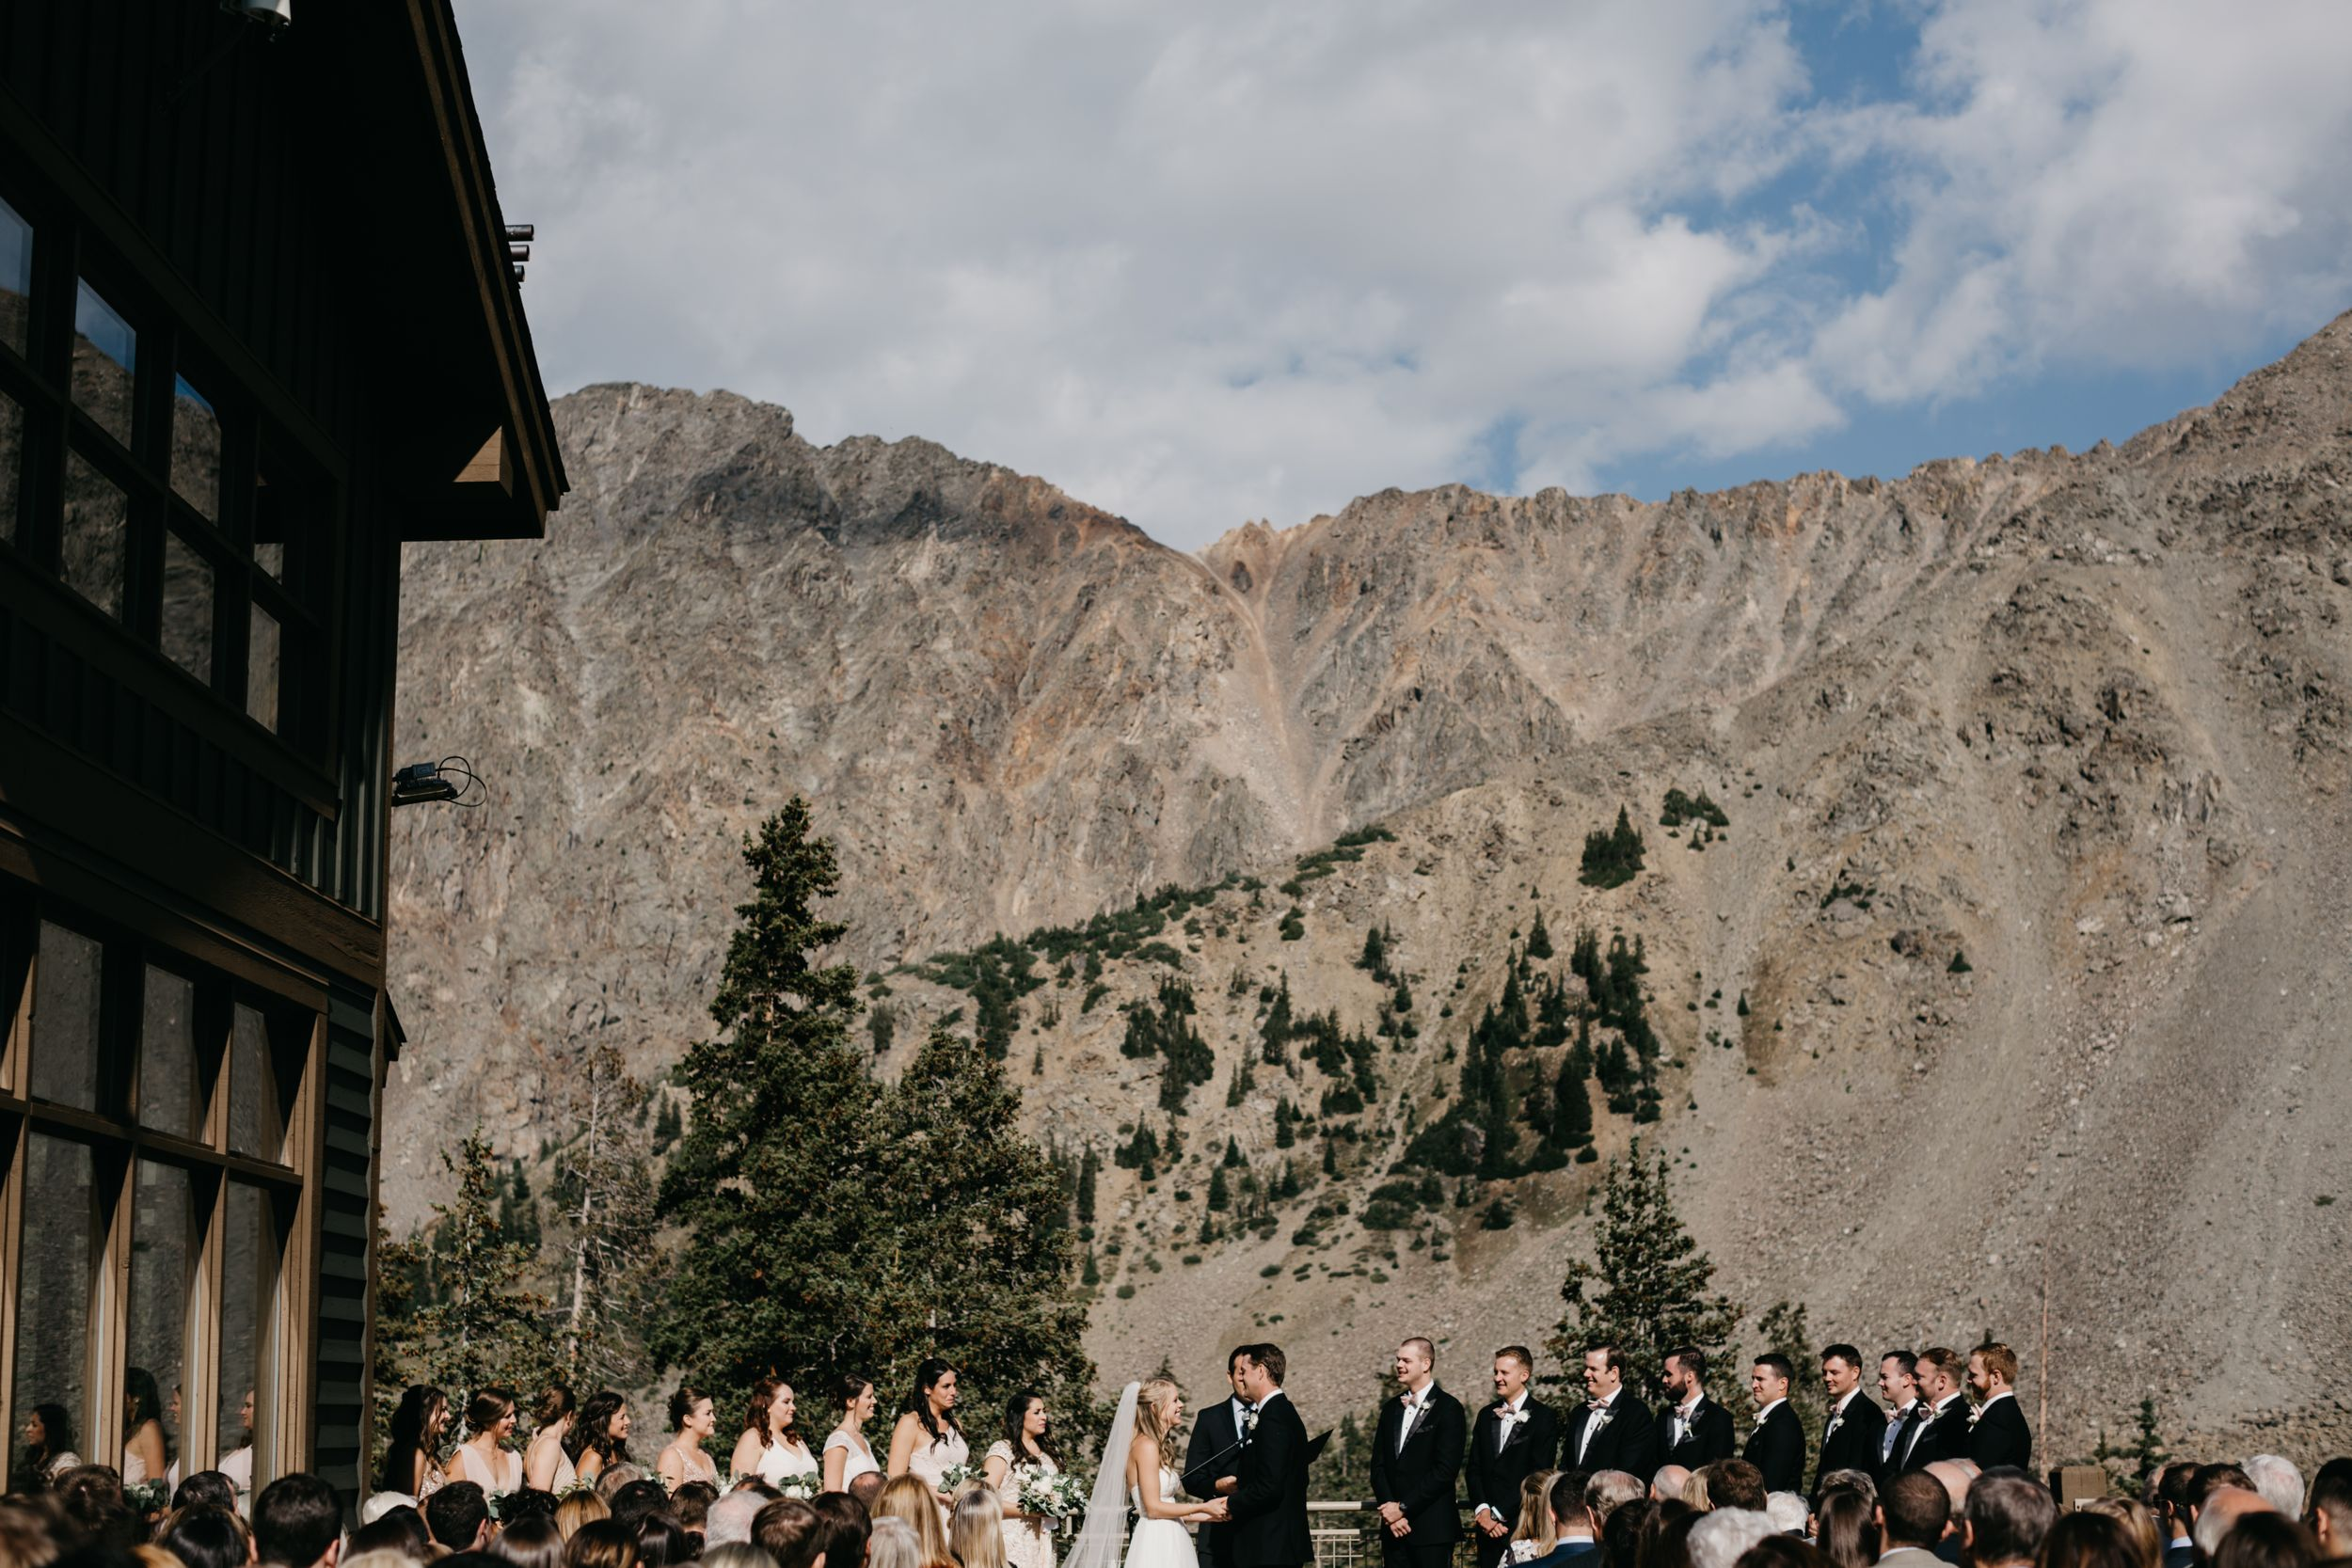 Black Mountain Lodge Wedding at Arapahoe Basin Ski Area in Dillon, CO